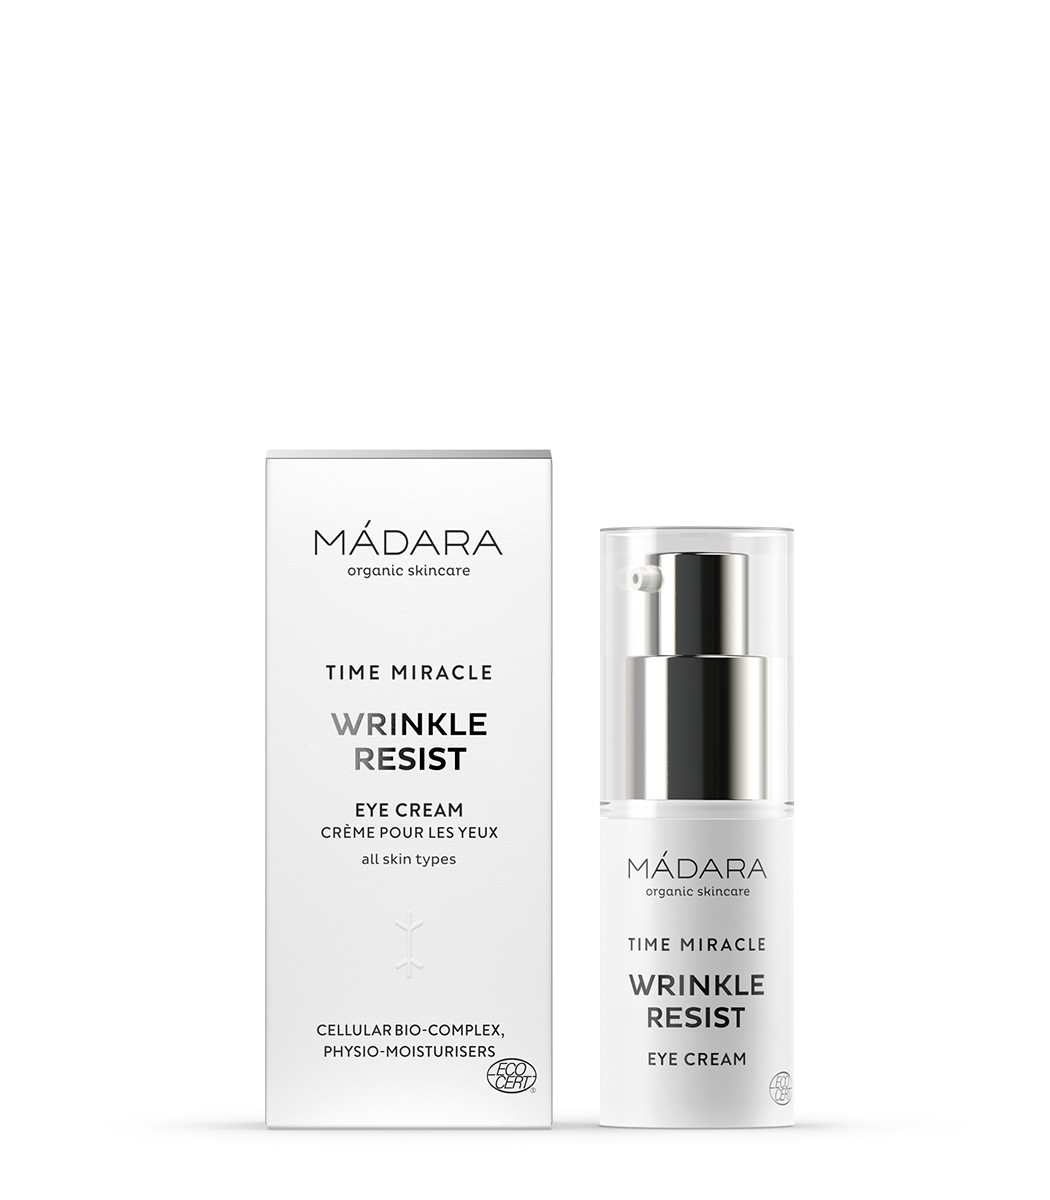 Mádara Time Miracle Wrinkle Resist Eye Cream 15ml